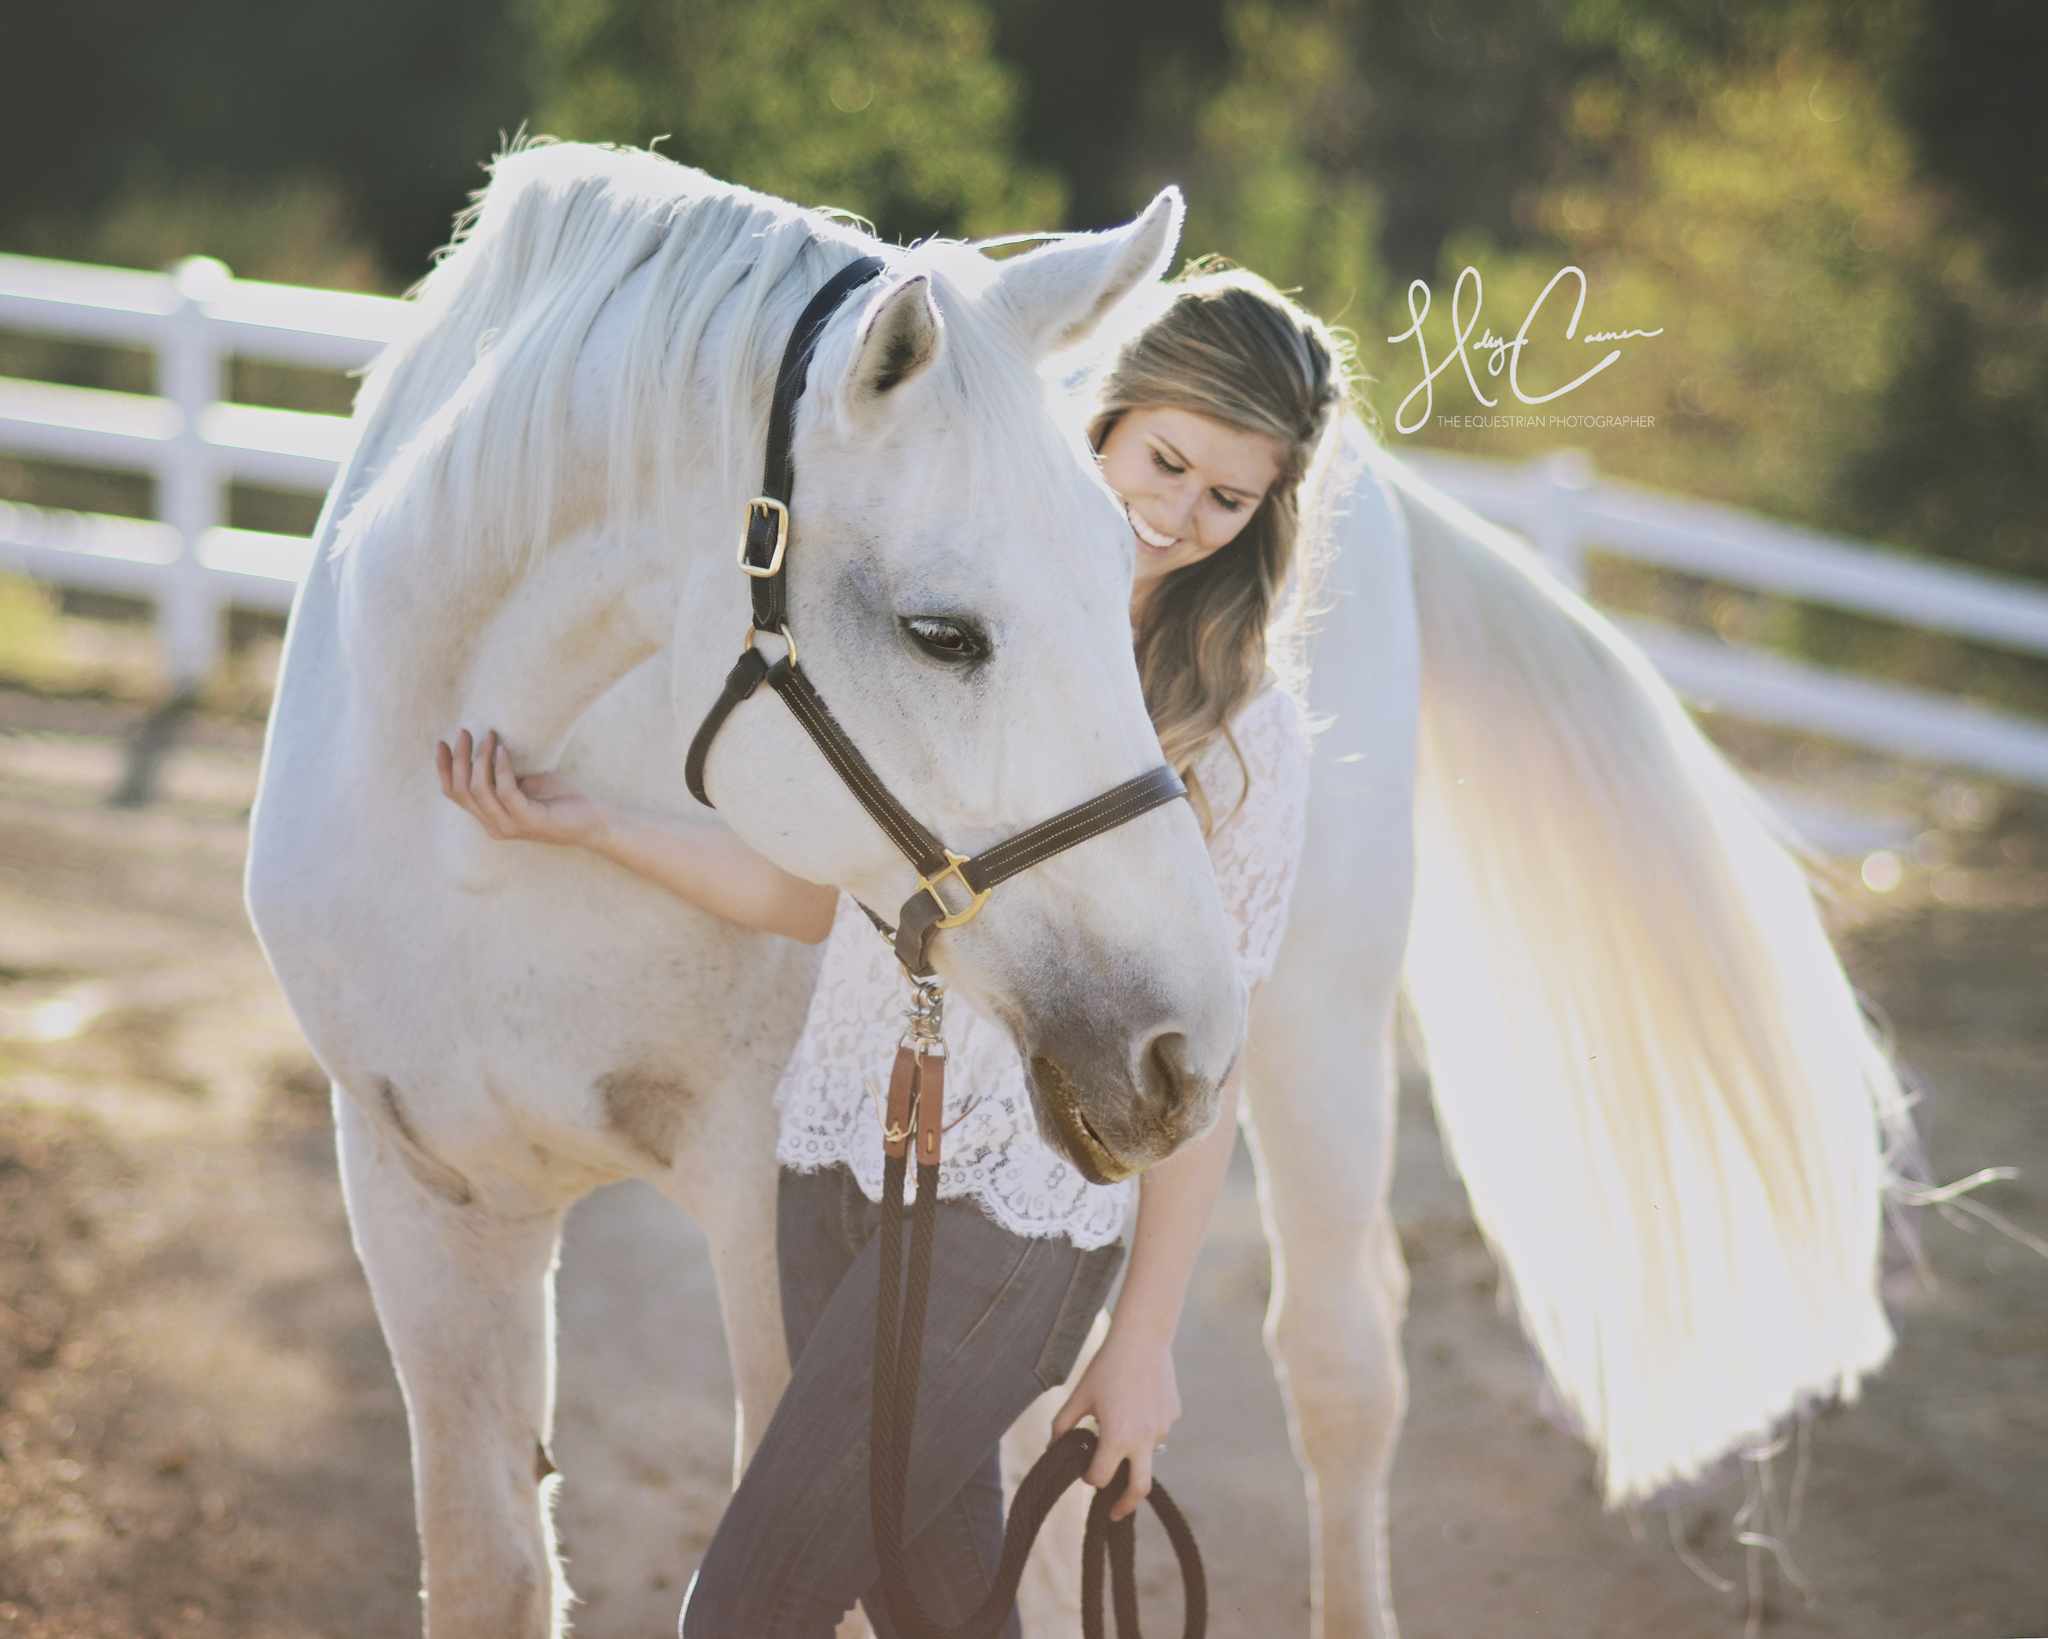 Holly Casner, The Equestrian Photographer – Bonding Session